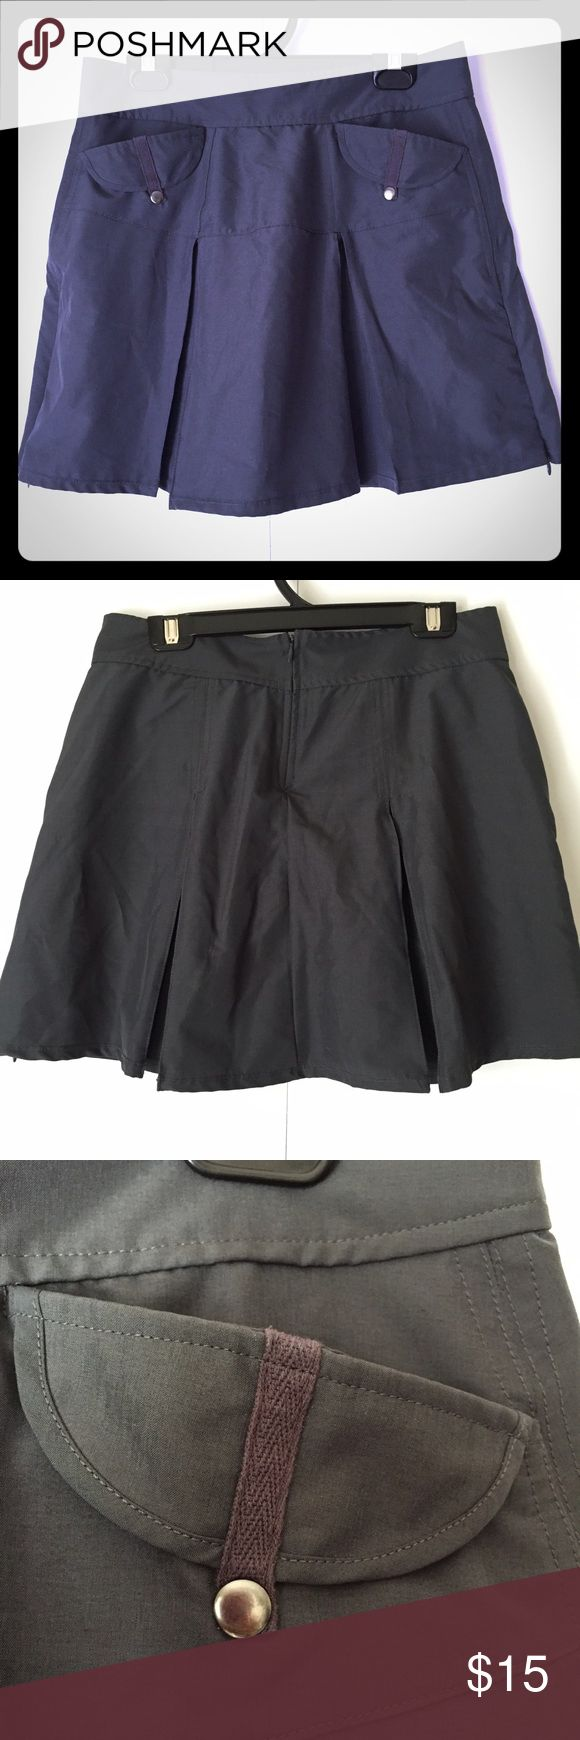 "Freedom Trail - Dark Grey Skort - S Take a hike in this skort or wear it to run or play tennis! This versatile skort has built in shorts and 2 front pockets. You can make the skirt flair more by unzipping both sides of the skirt (zipper 7""). Measured flat: 15"" waist; 16"" length & 2"" inseam shorts. Body: 92% Polyester, 8% Spandex; Lining: 88% Polyester, 12% Spandex Freedom Trail by Kyodan Shorts Skorts"